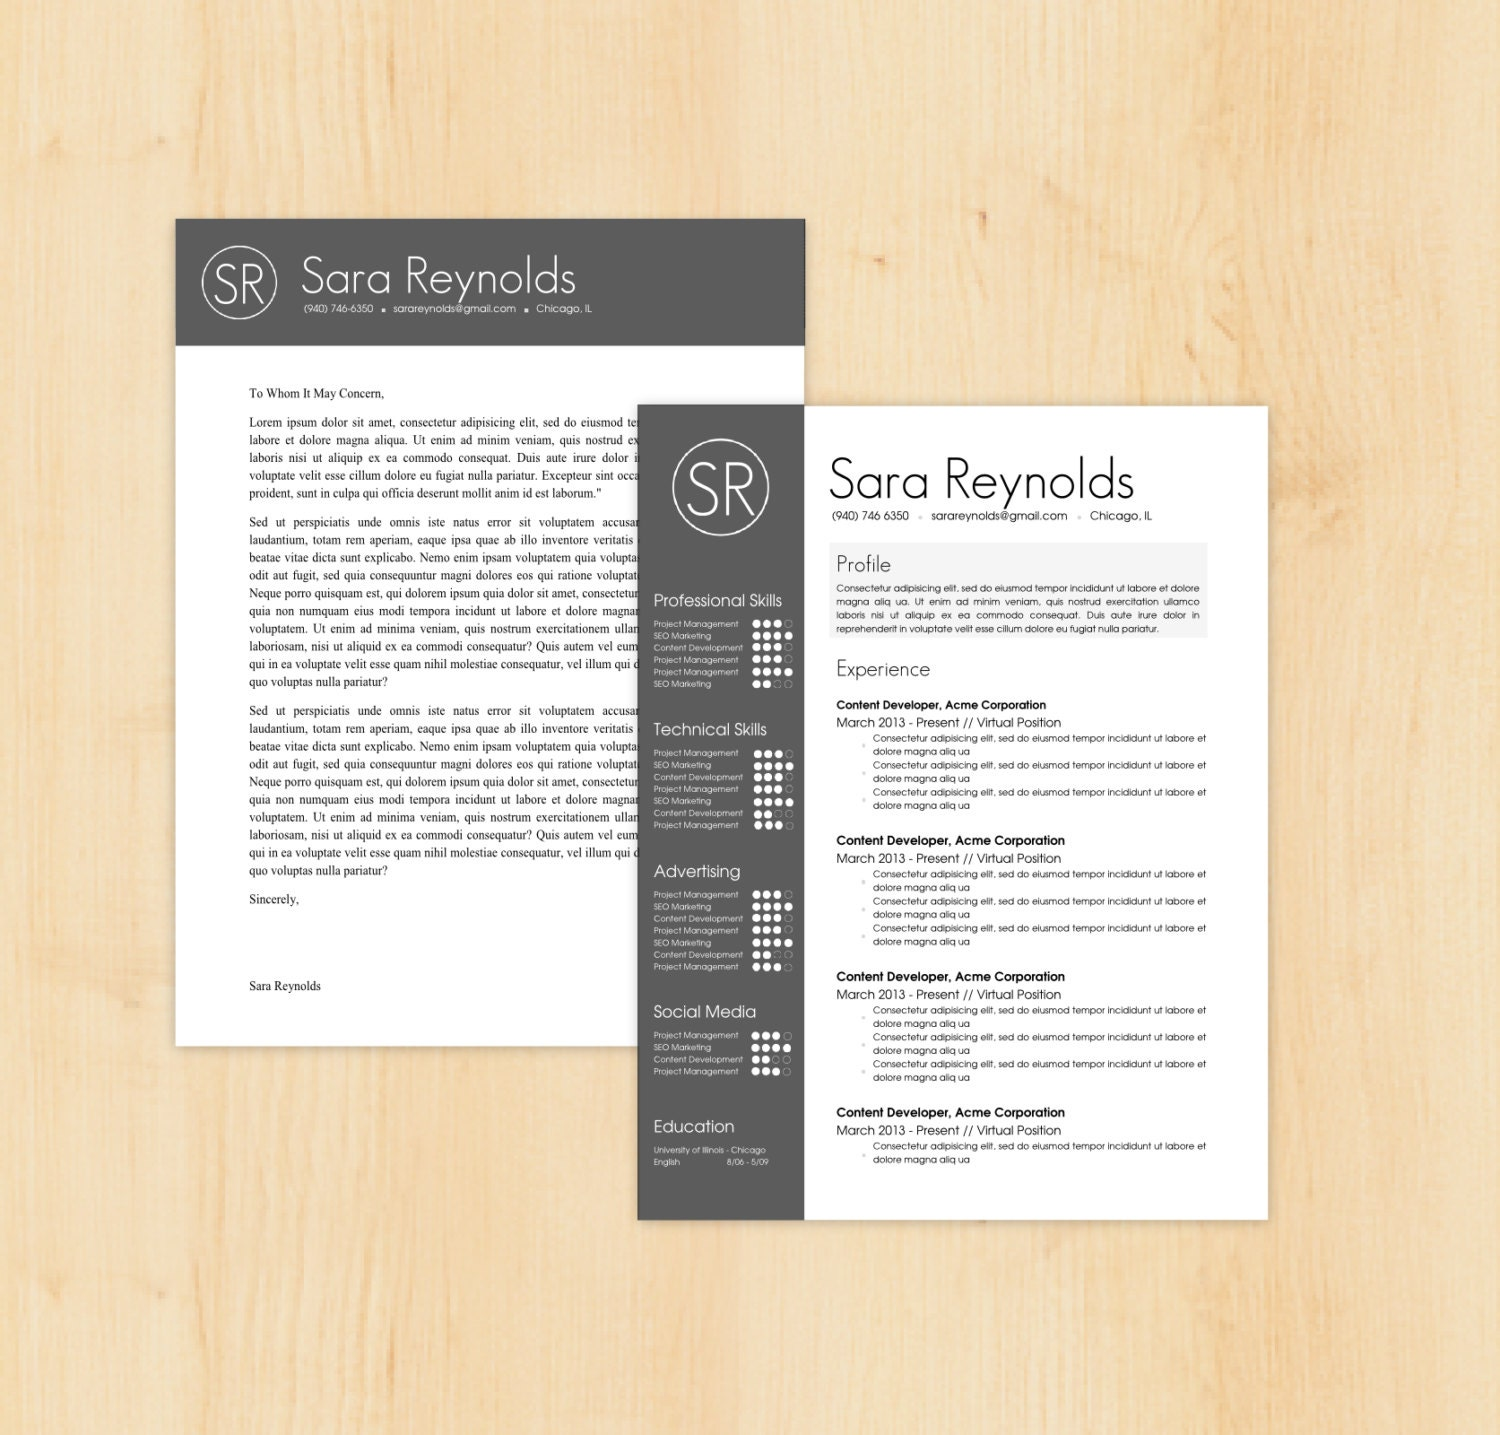 sample referral letters cover letter vault com - Example Of A Cover Sheet For A Resume